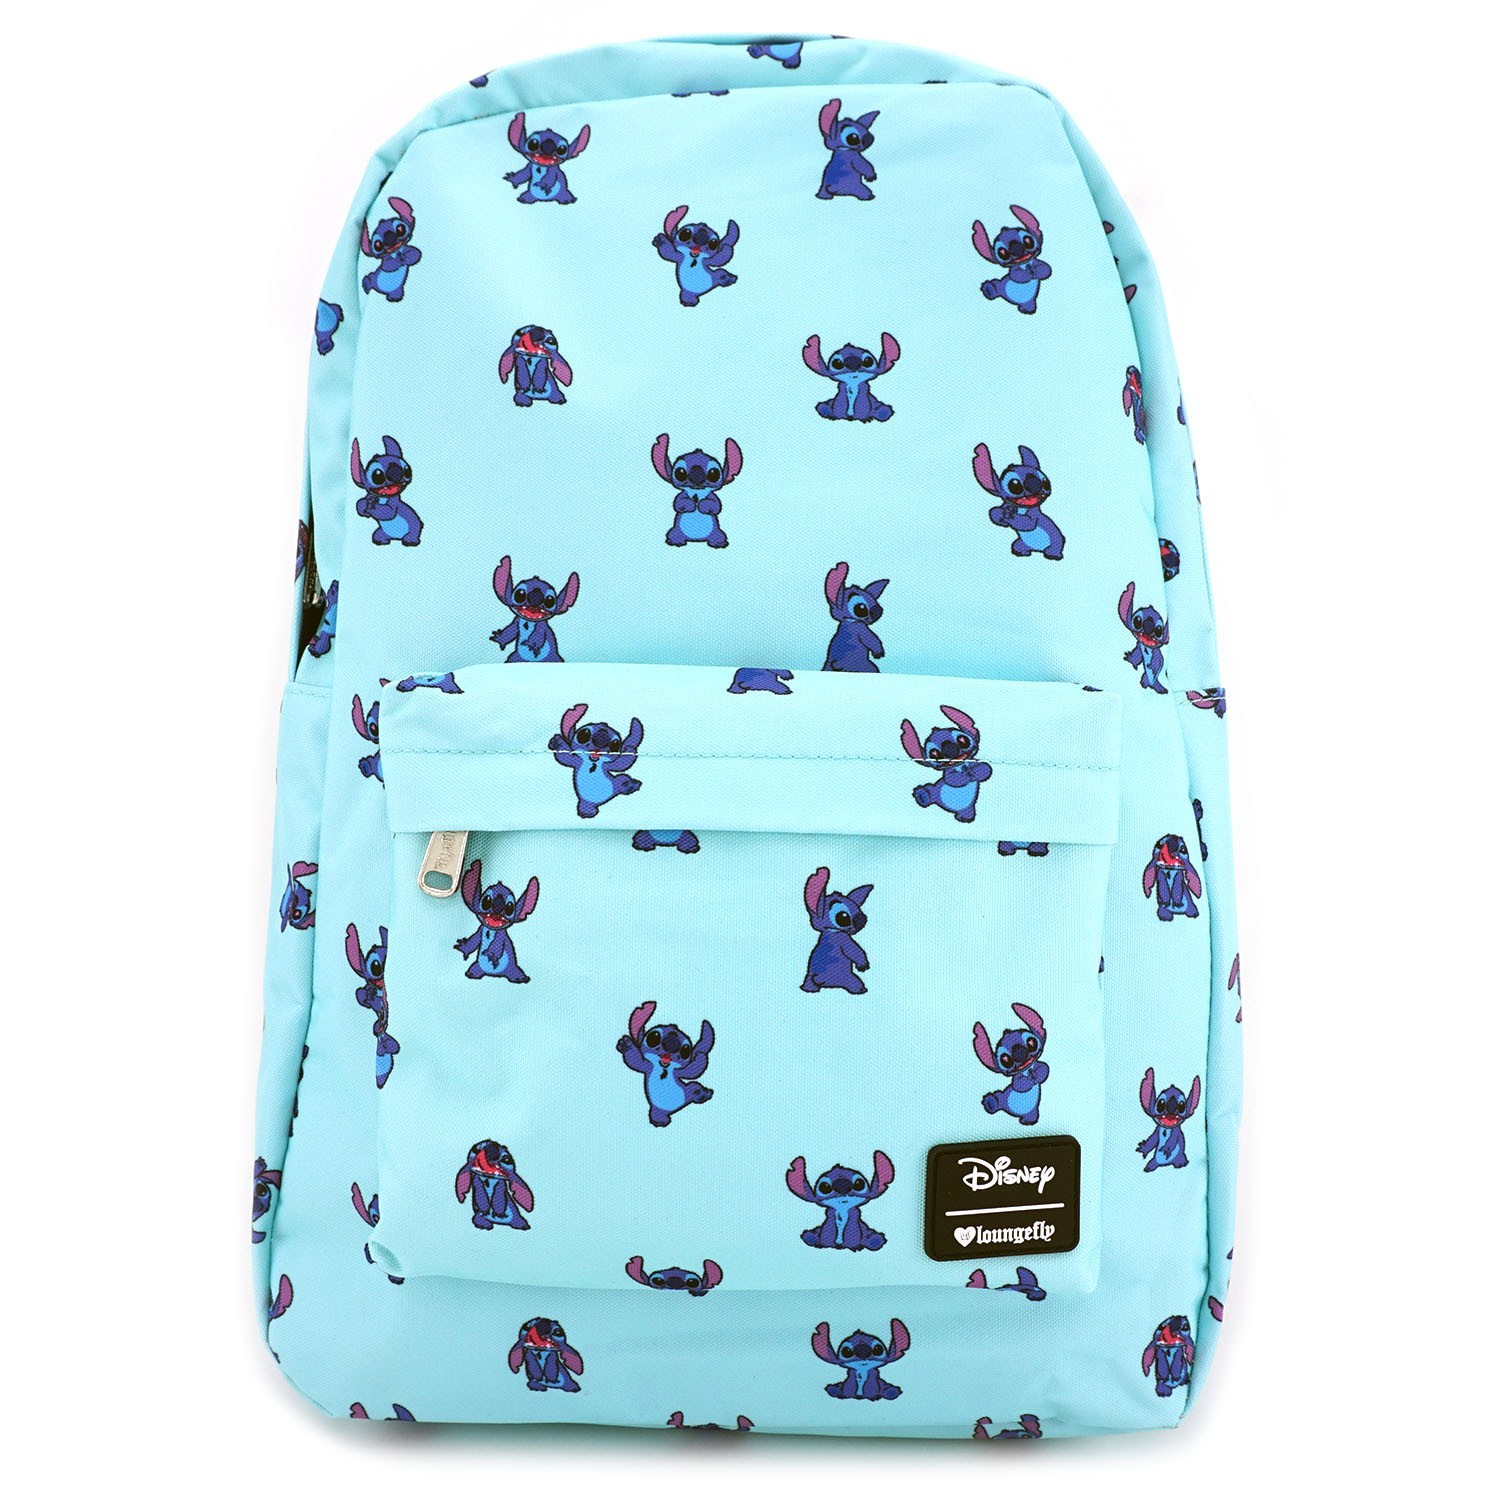 Loungefly Disney Stitch AOP Backpack image ...